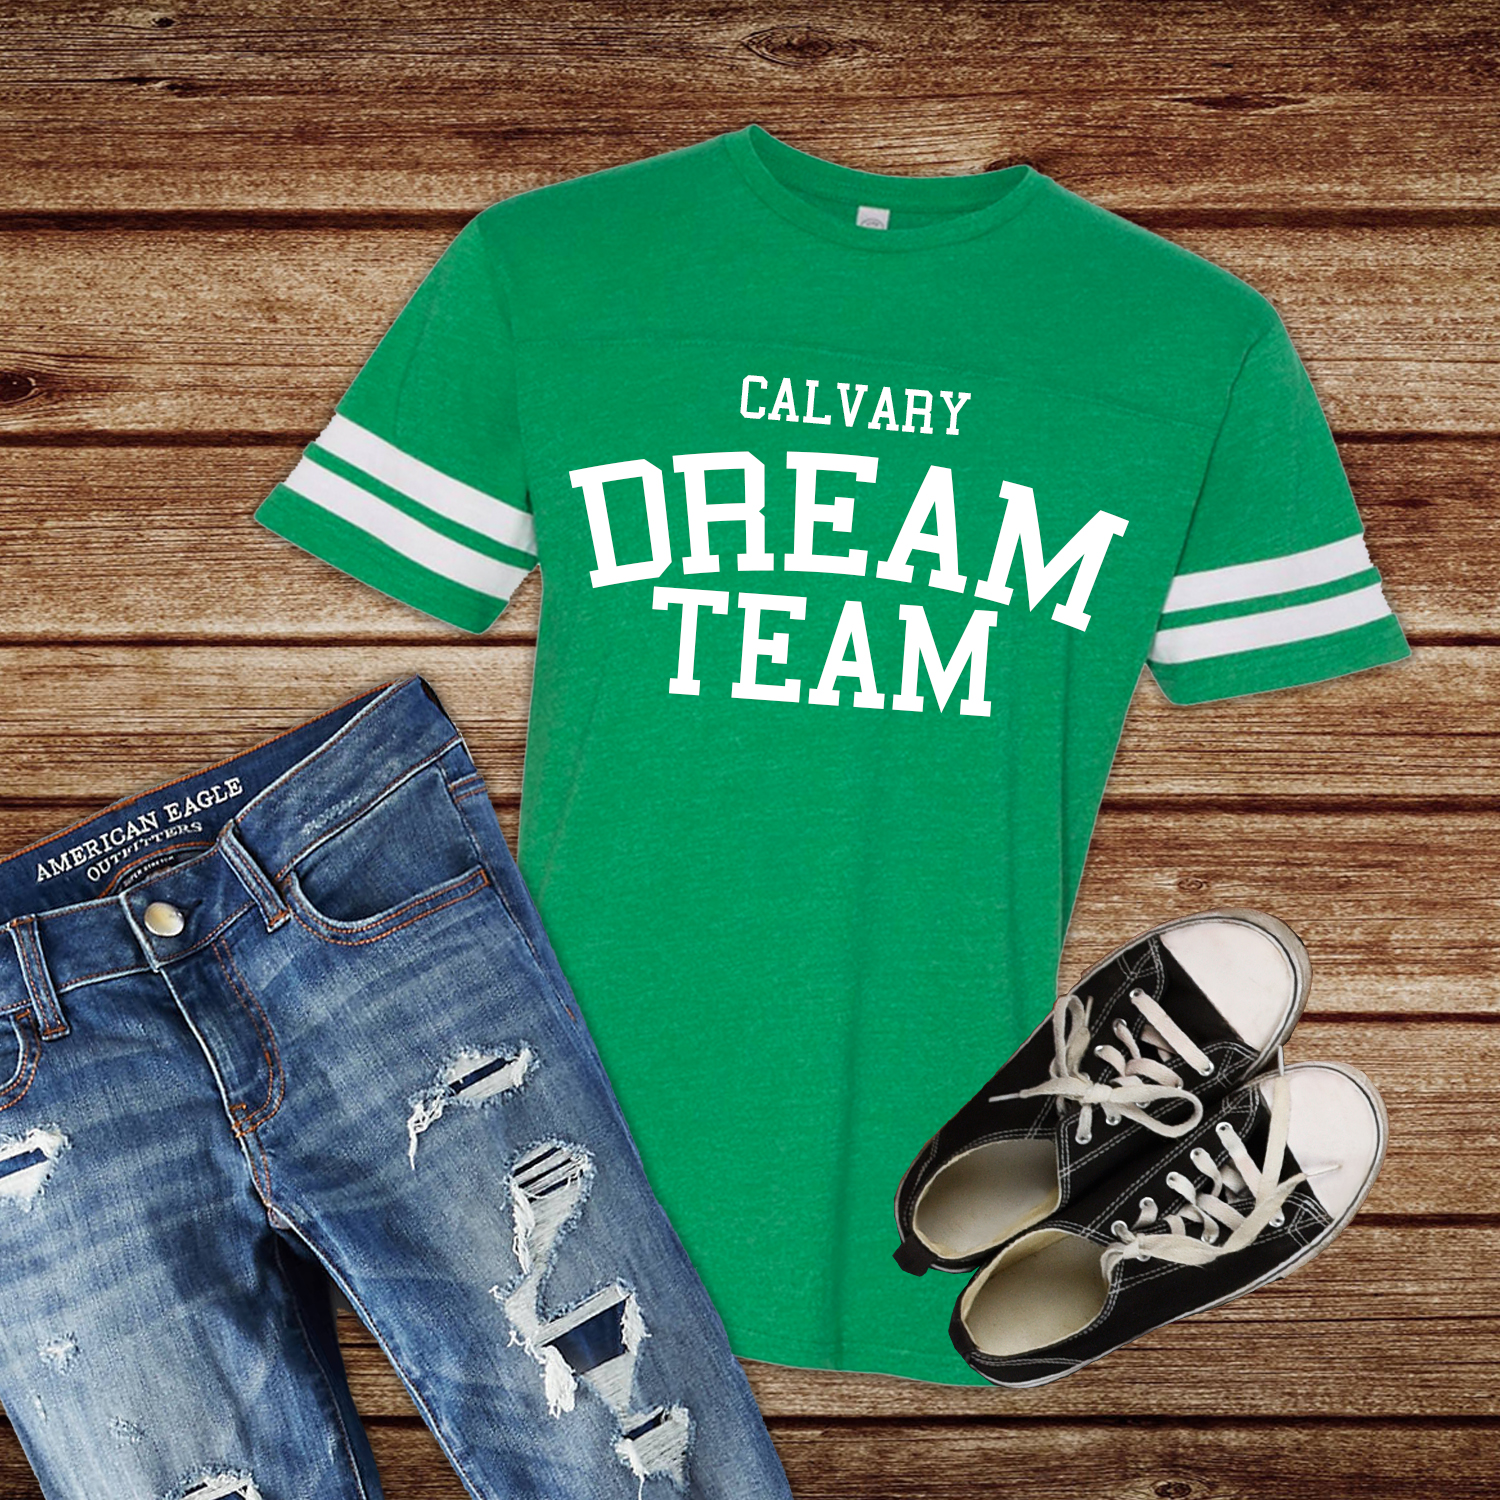 Calvary dream team shirt